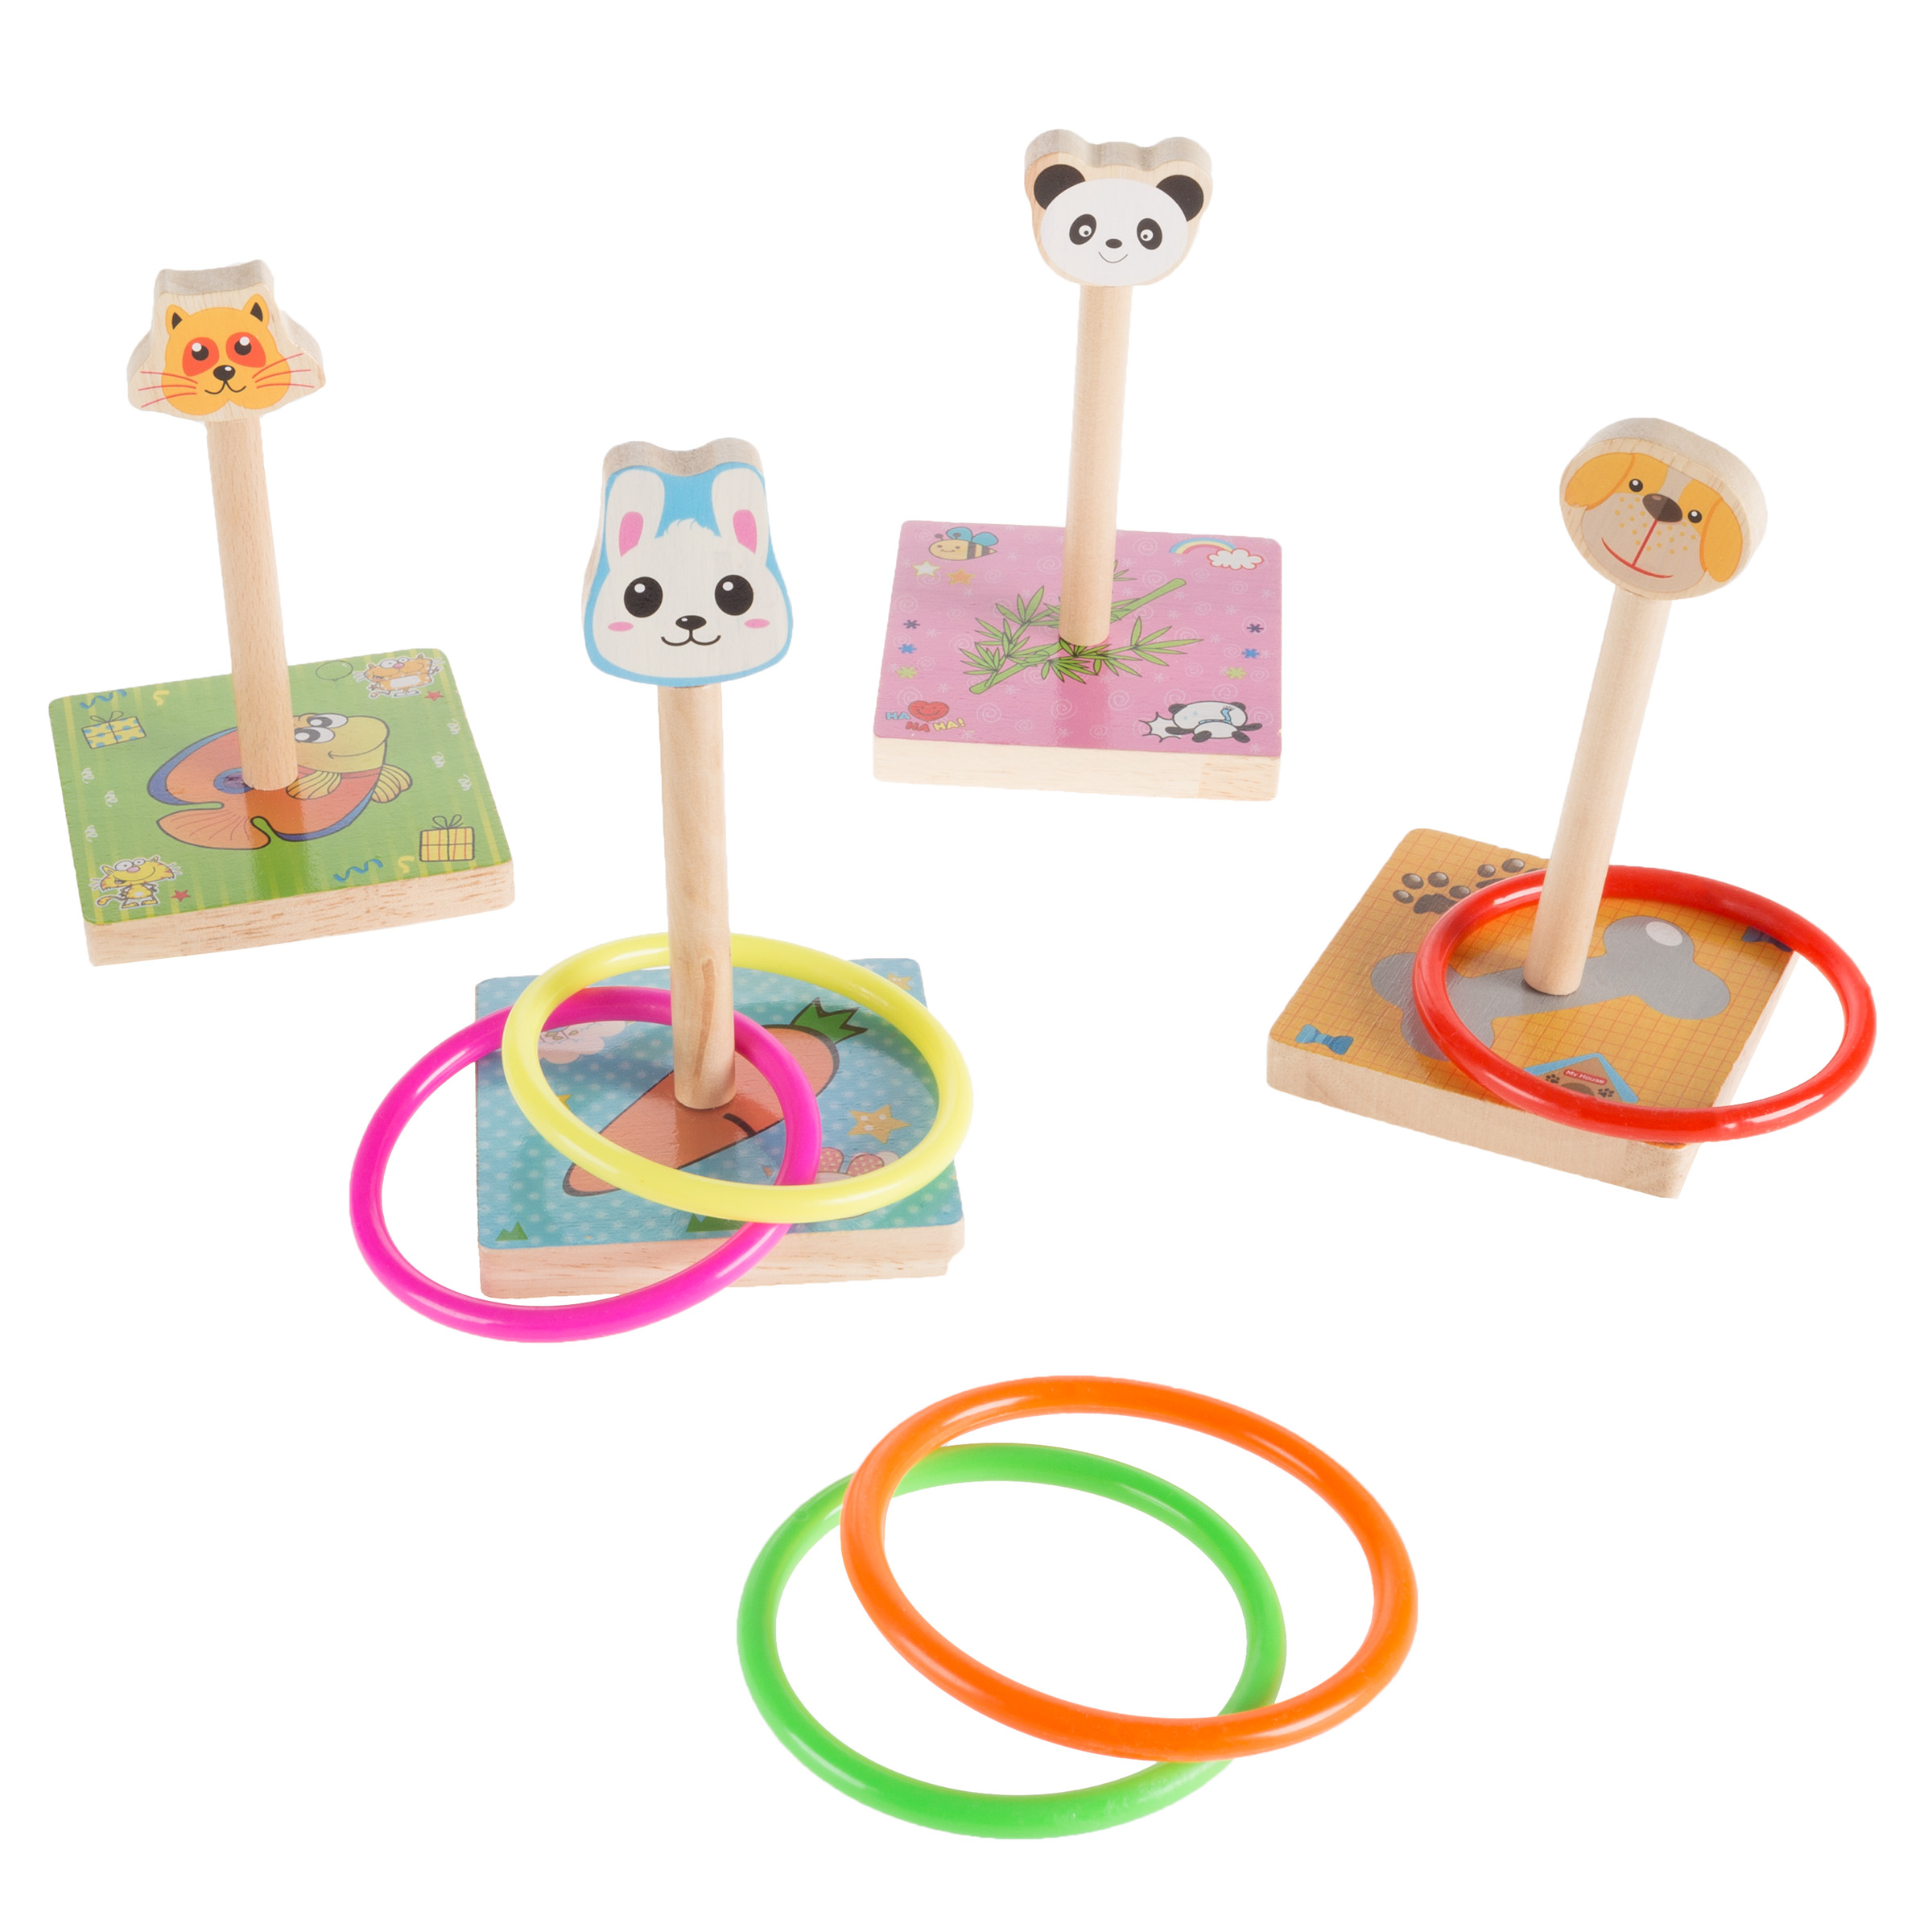 Kids Zoo Animal Ring Toss Game Set-Indoor Outdoor Old-Fashioned Horseshoe Toy-Fun Preschool Age Learning Activity for Boys and Girls by Hey! Play!